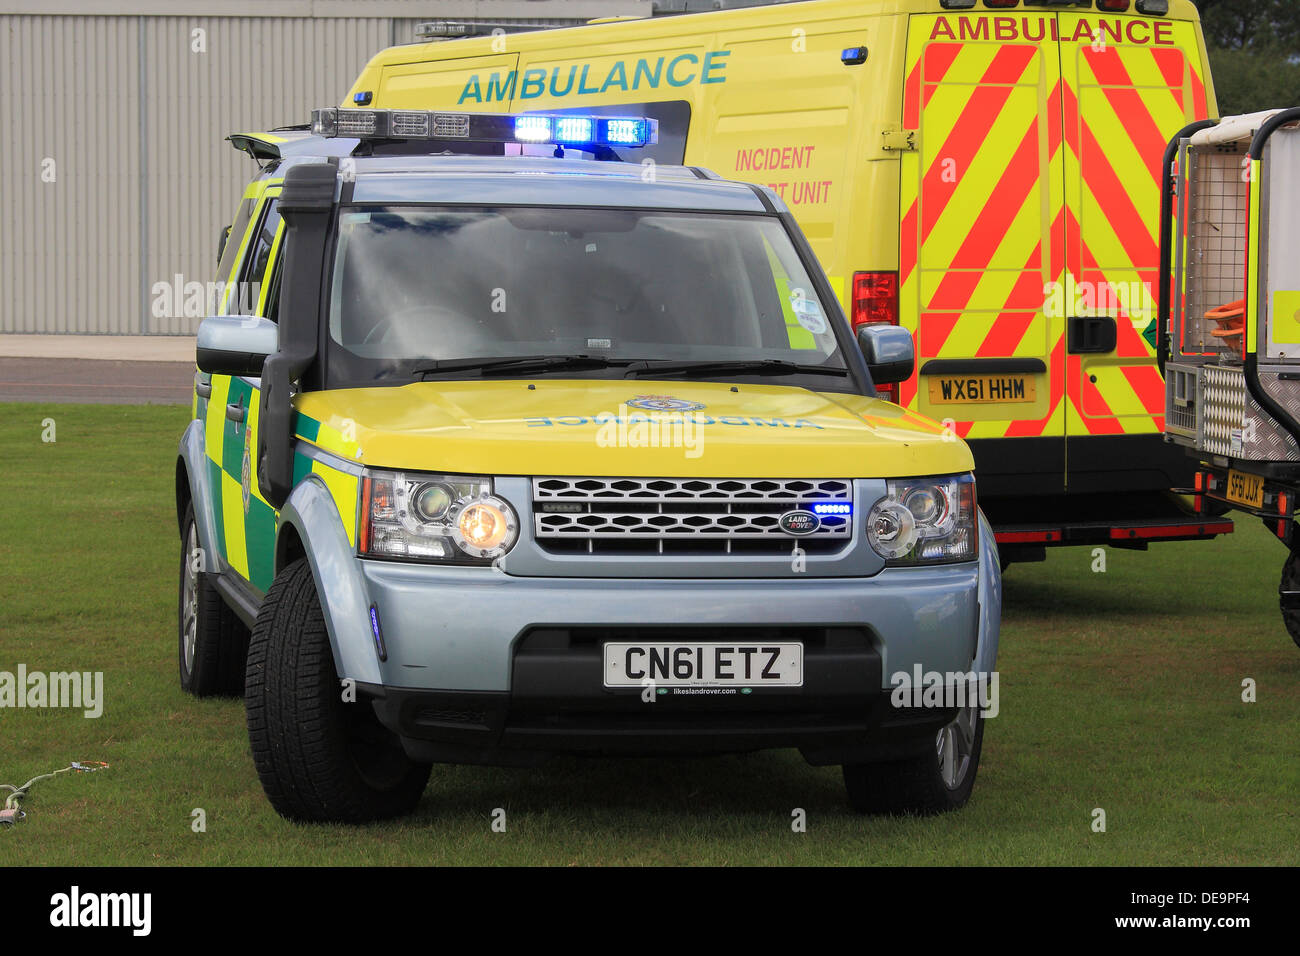 NHS, Ambulance service Hazardous Area Response Team (HART) vehicle on display at a public event in Essex. - Stock Image